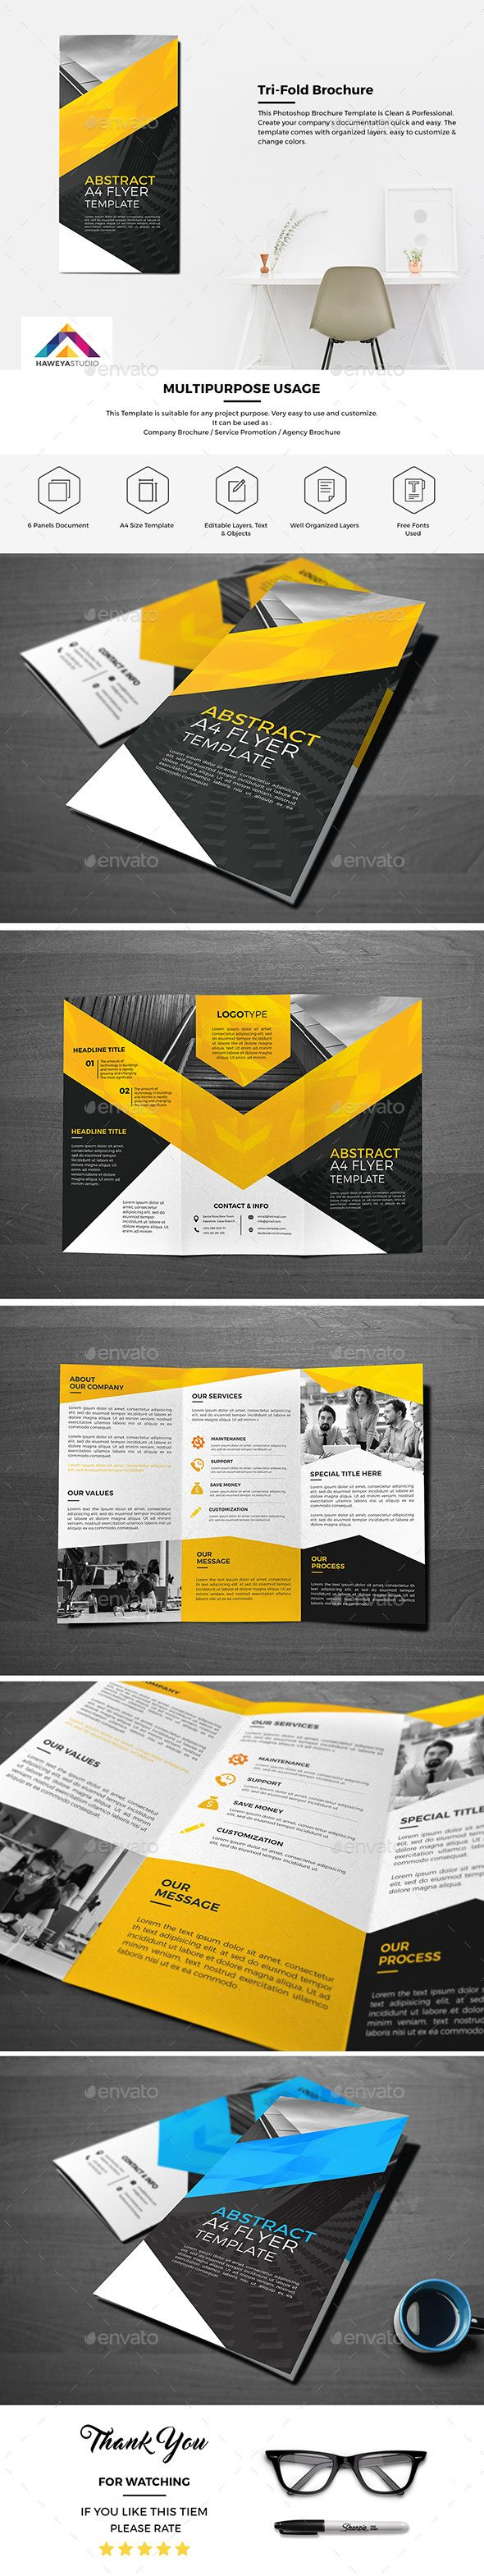 Haweya Tri-Fold Brochure Template PSD. Download here: http://graphicriver.net/item/haweya-trifold-brochure-01-/15774714?ref=ksioks